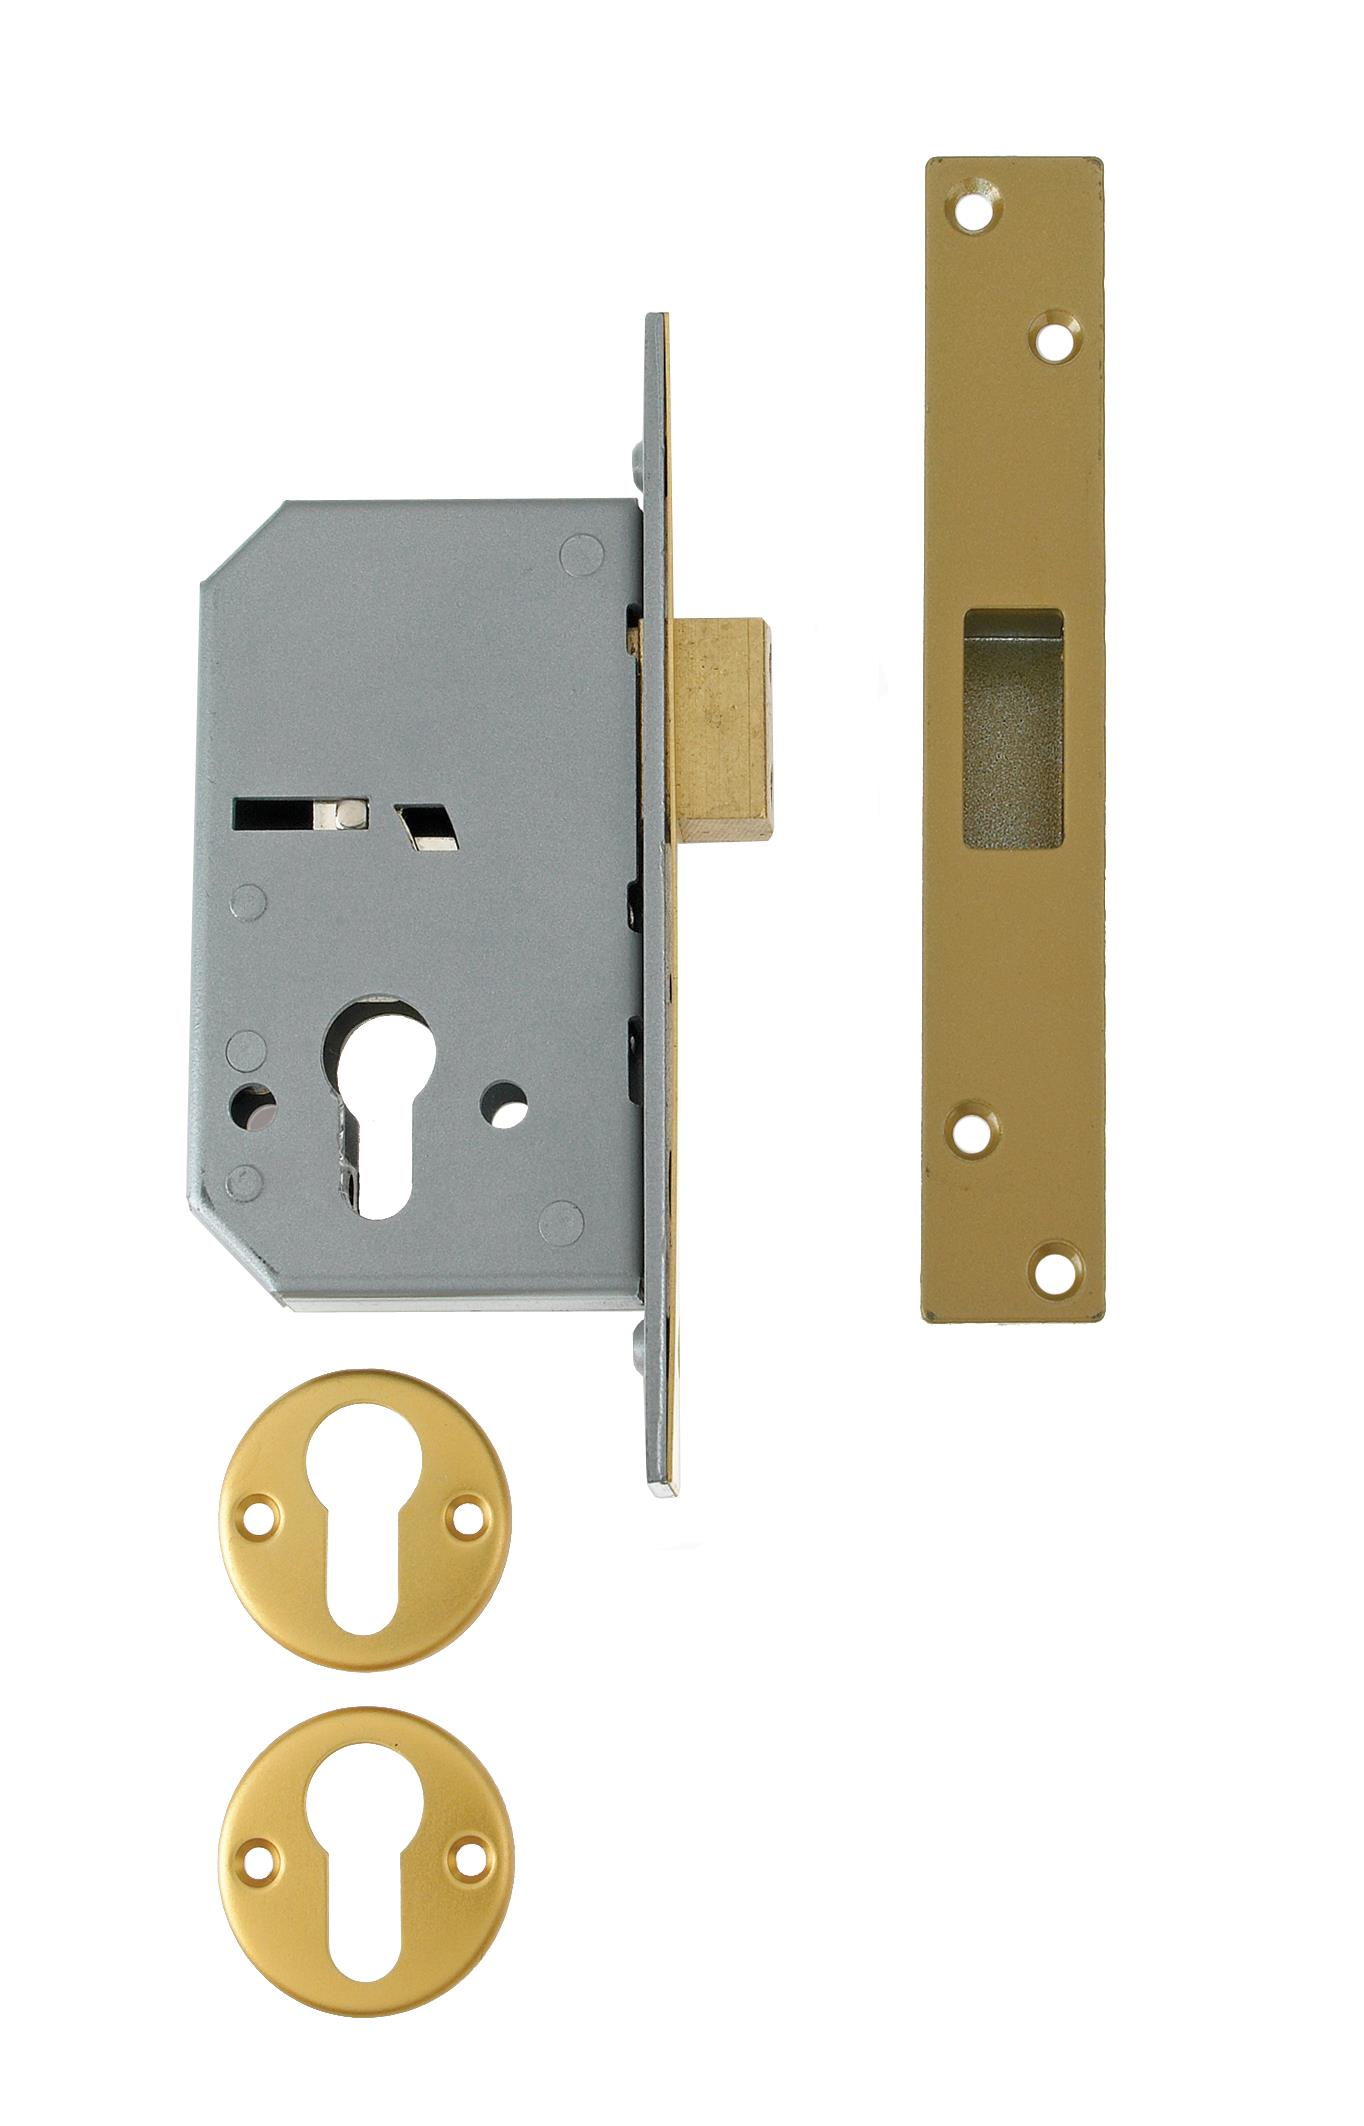 3C10 - Euro Profile Cylinder Mortice Deadlock (case only)